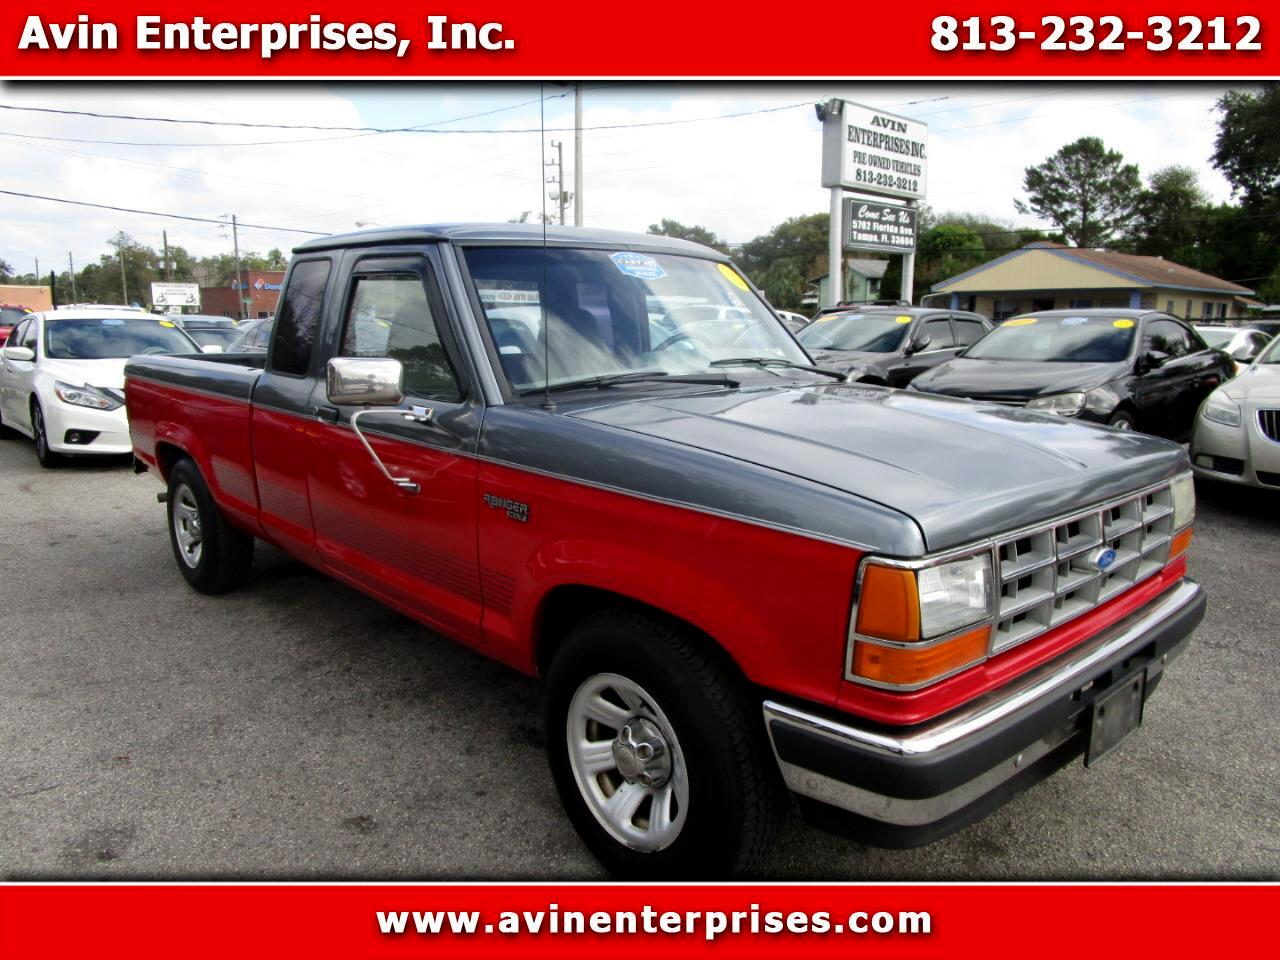 Ford Ranger SuperCab 2WD 1991